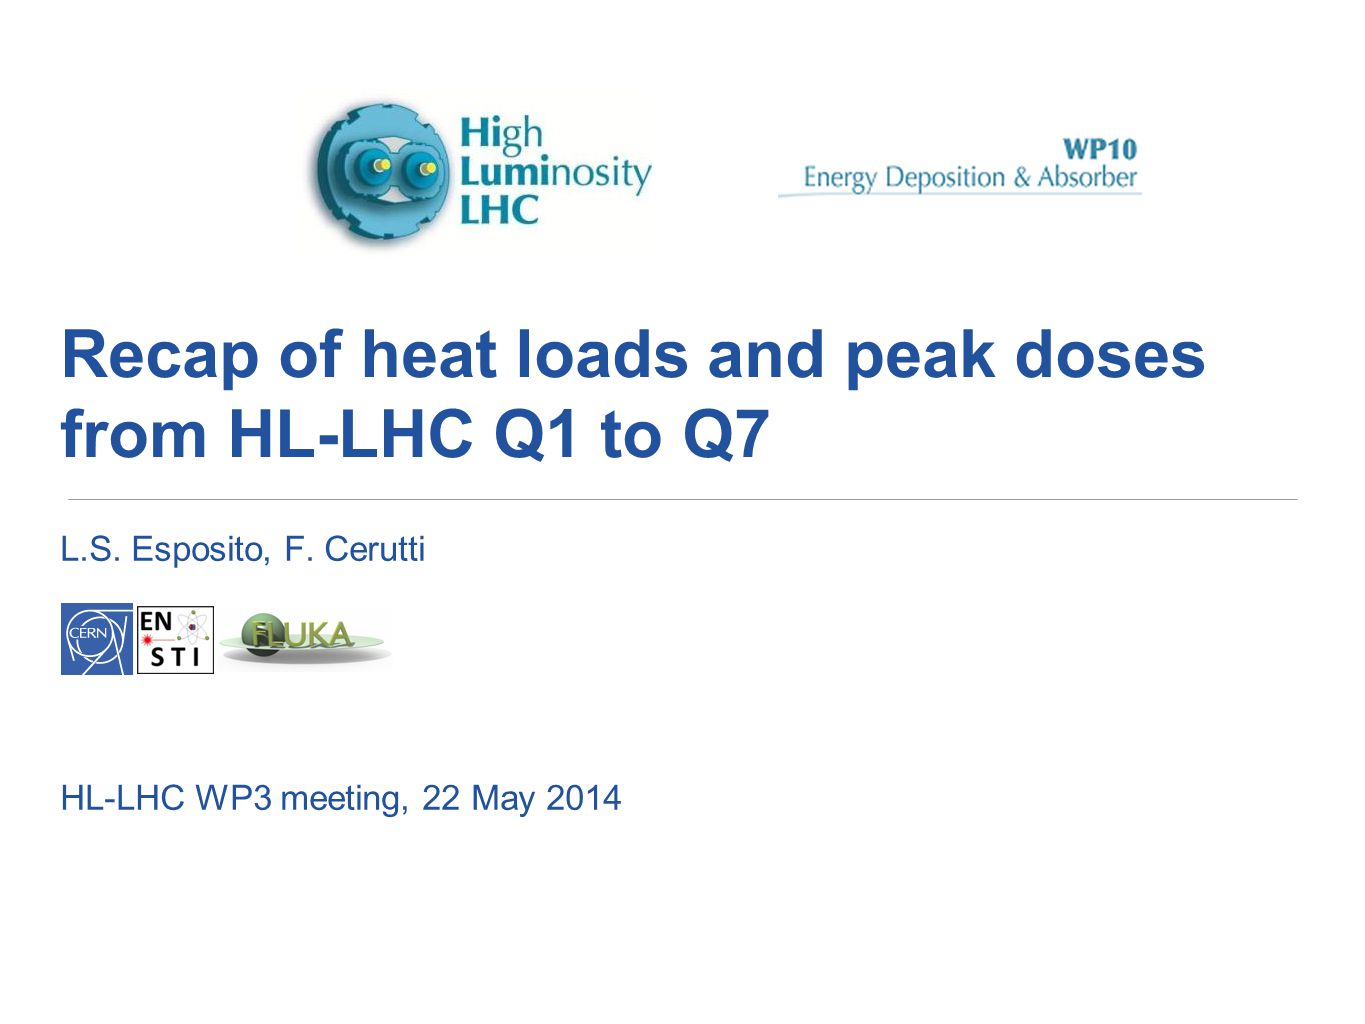 Recap of heat loads and peak doses from HL-LHC Q1 to Q7 L.S. Esposito, F. Cerutti HL-LHC WP3 meeting, 22 May 2014